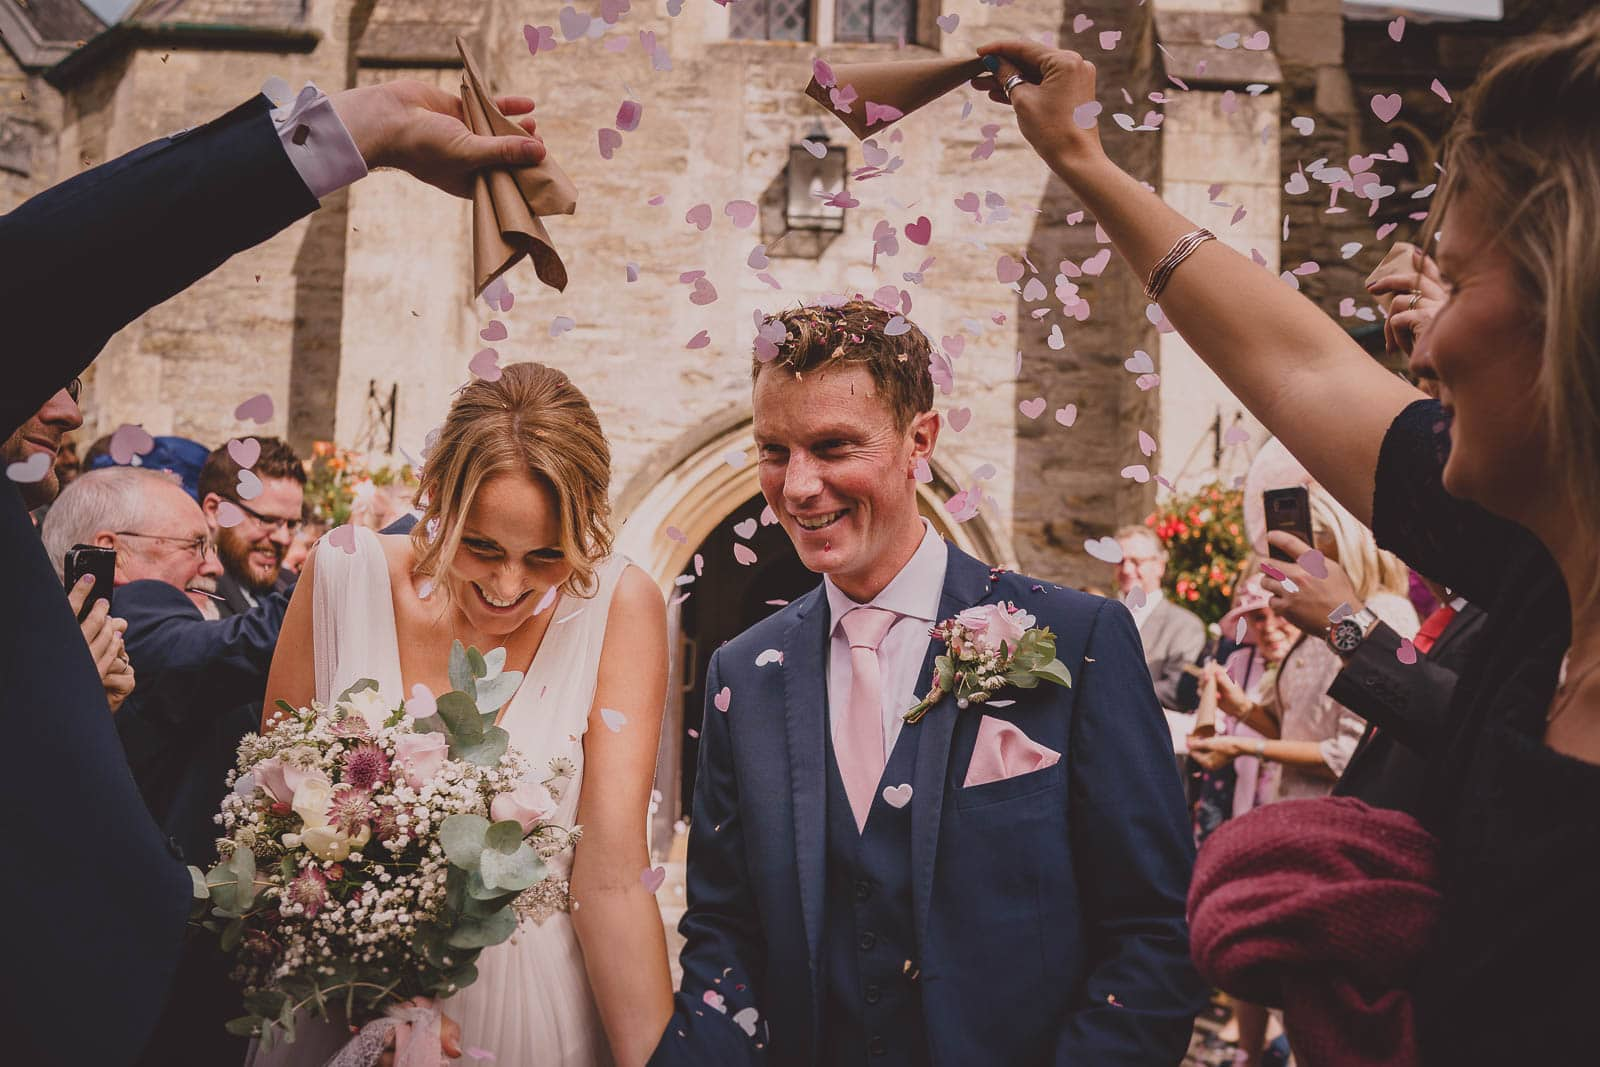 An image of wedding confetti being thrown at Alverton Manor.